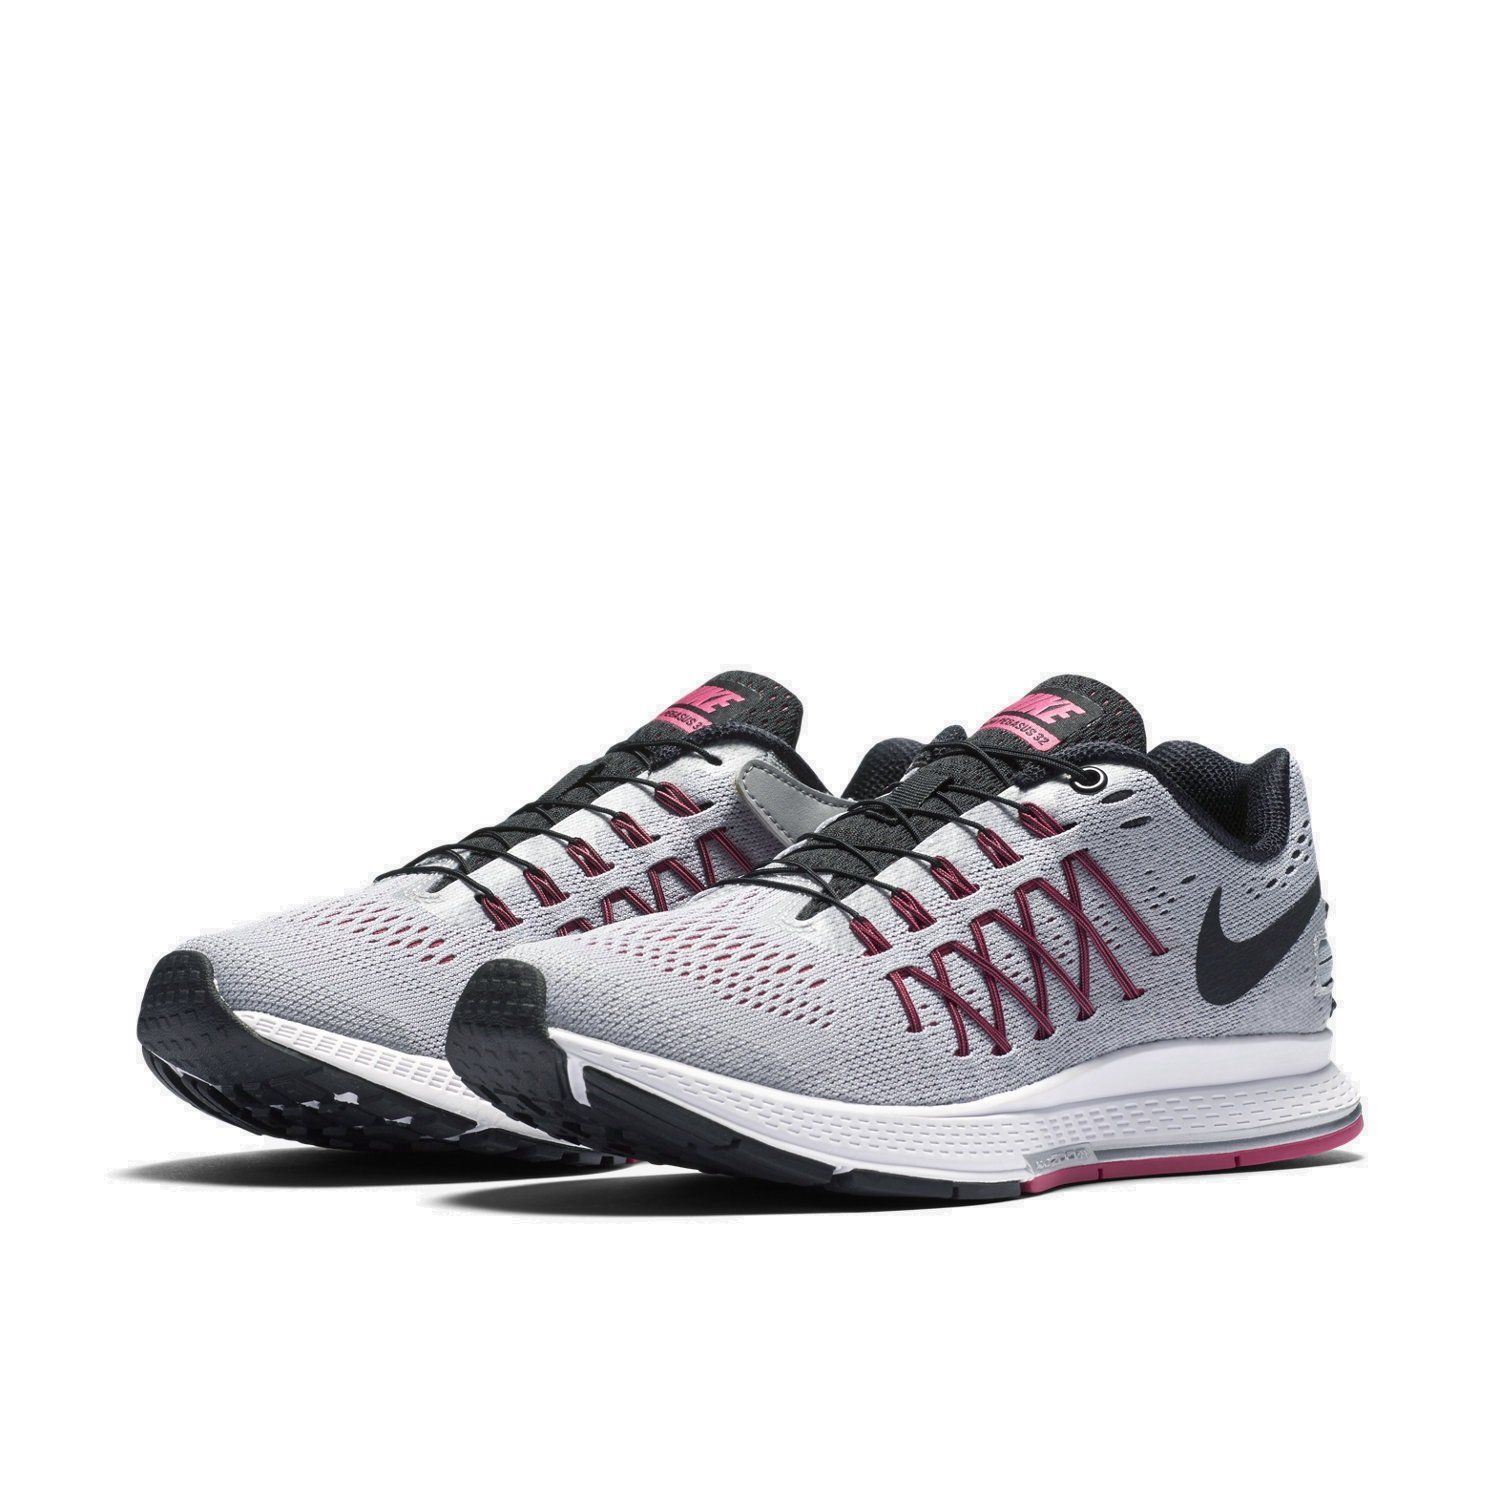 le dernier 62991 f6bc0 Nike Women's W Air Zoom Pegasus 32 Flyease Running Shoes ...